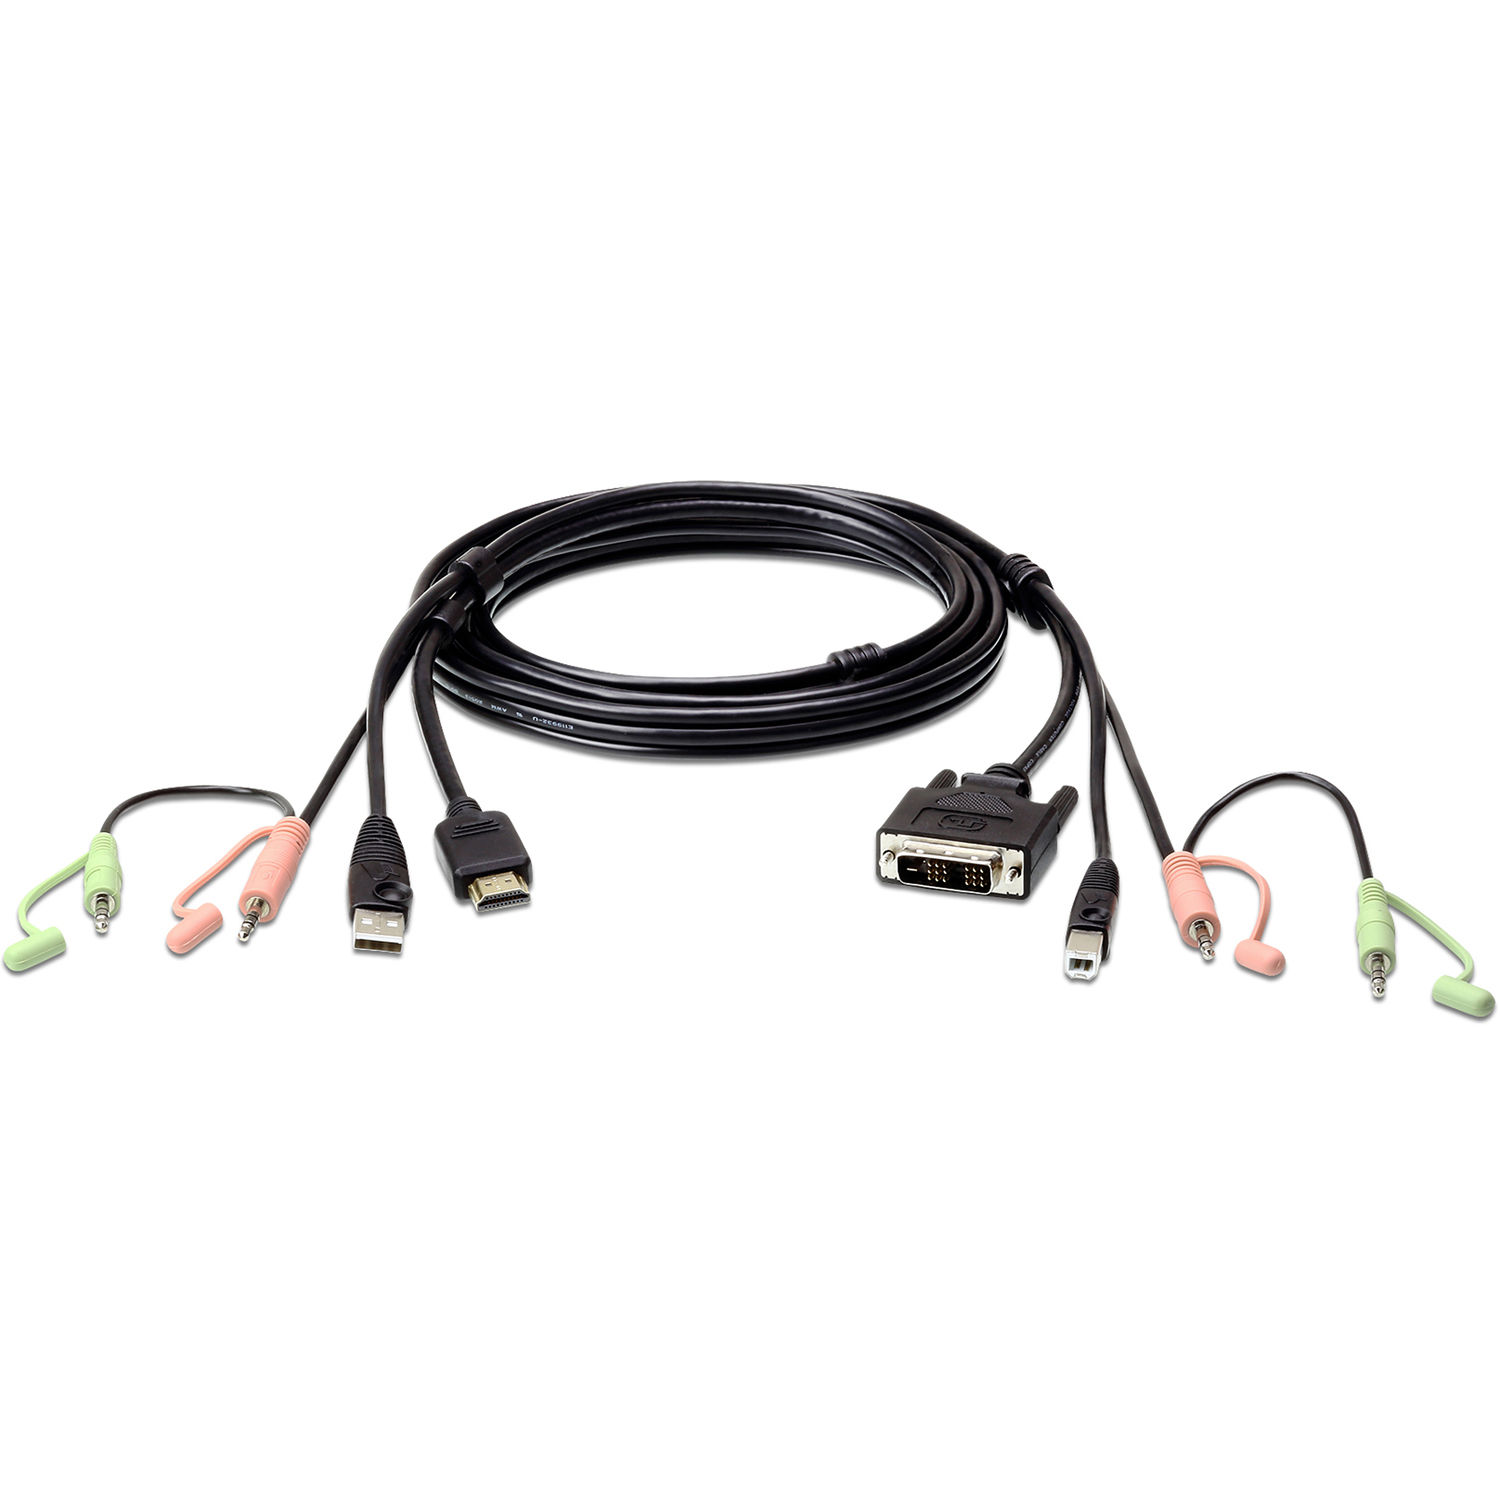 Aten Usb A Hdmi To Dvi D Usb B Kvm Cable With Audio 6